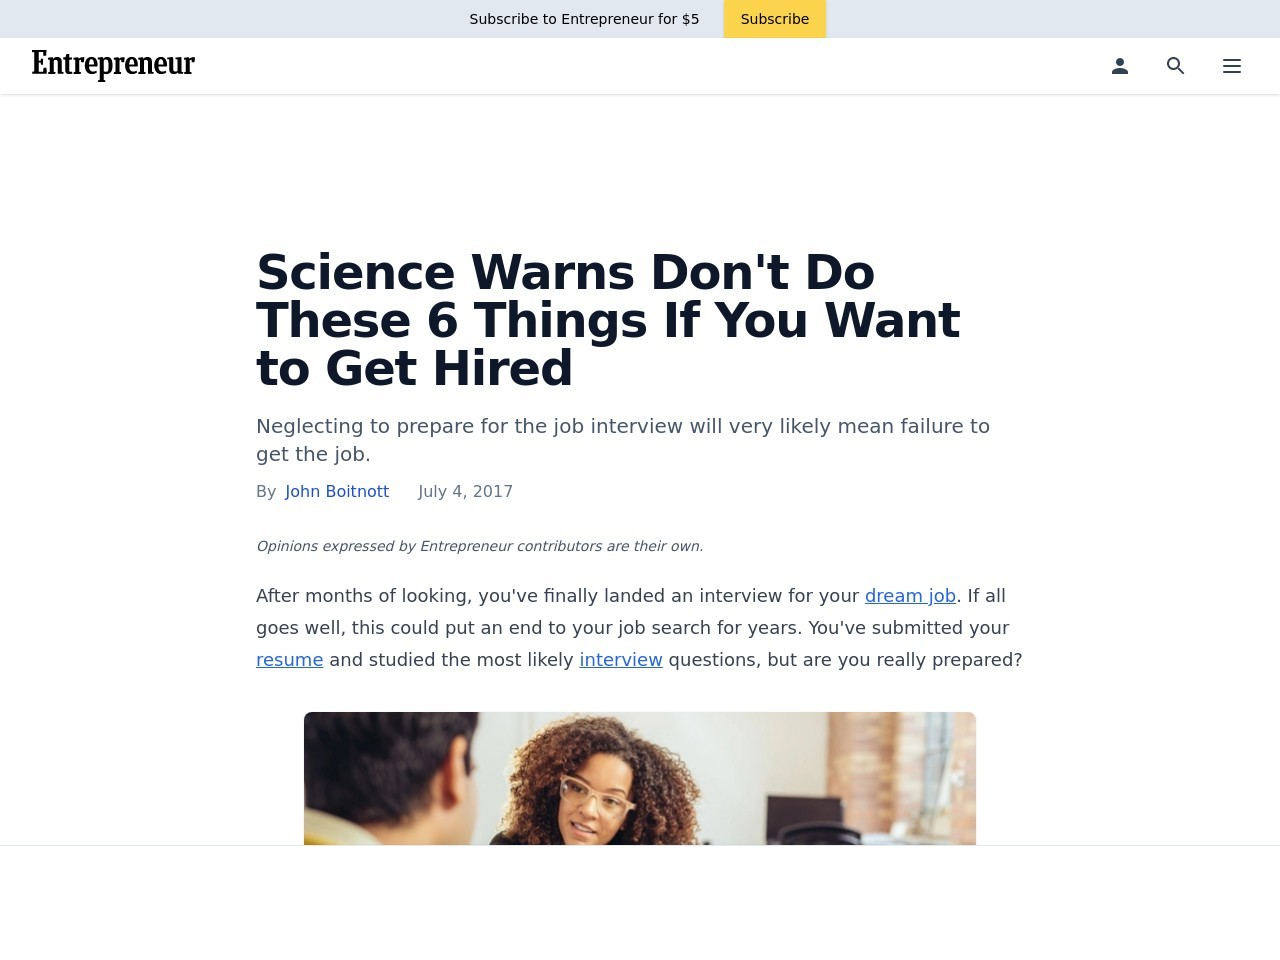 Science Warns Don't Do These 6 Things If You Want to Get Hired